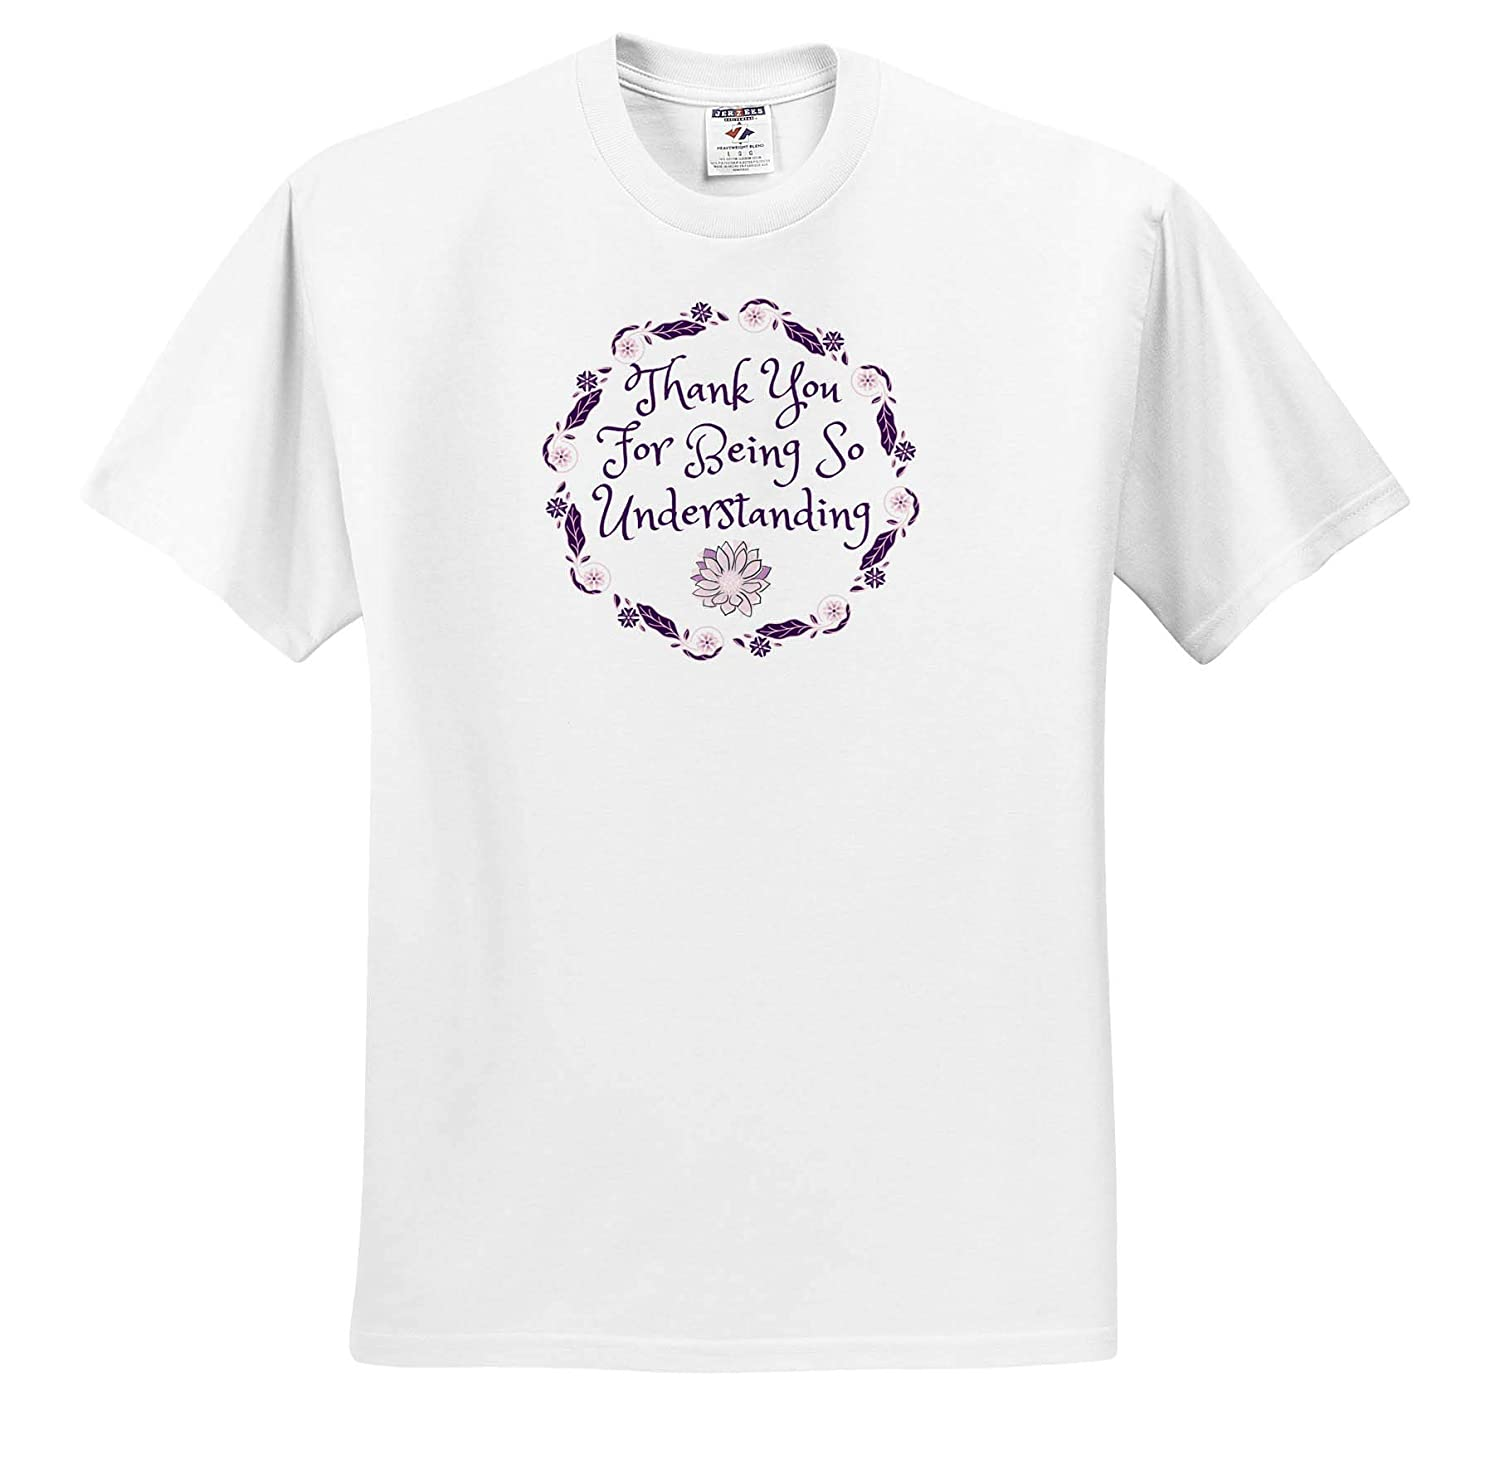 Image of Thank You for Being So Understanding Adult T-Shirt XL 3dRose Carrie Merchant Image Quote ts/_317458